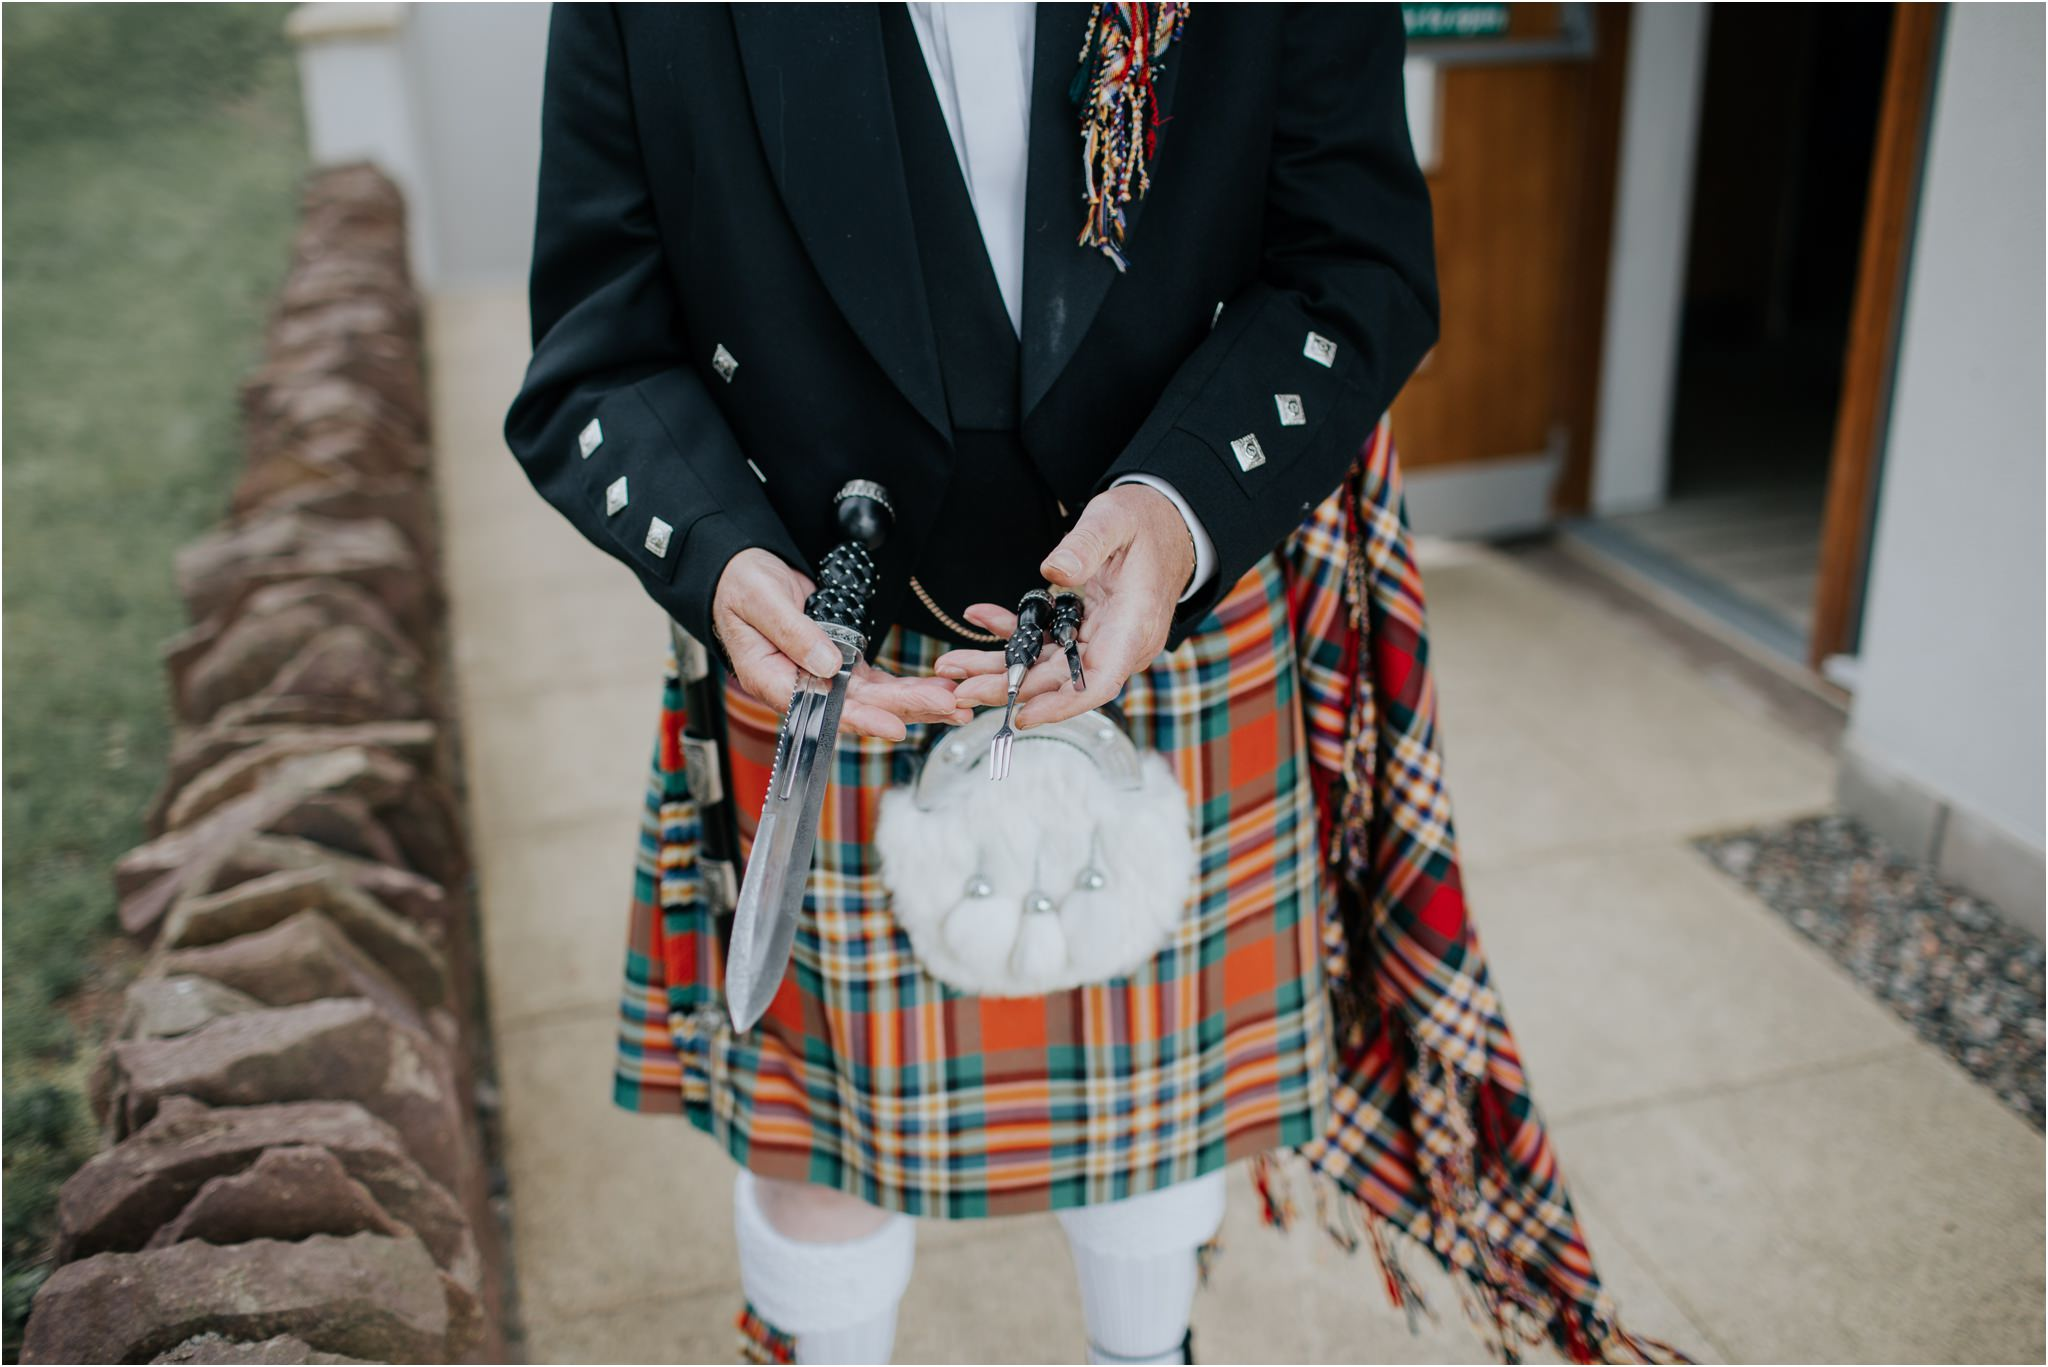 Photography 78 - Glasgow Wedding Photographer - Fraser Thirza - Killearn Village Hall - Three Sisters Bake Wedding_0119.jpg